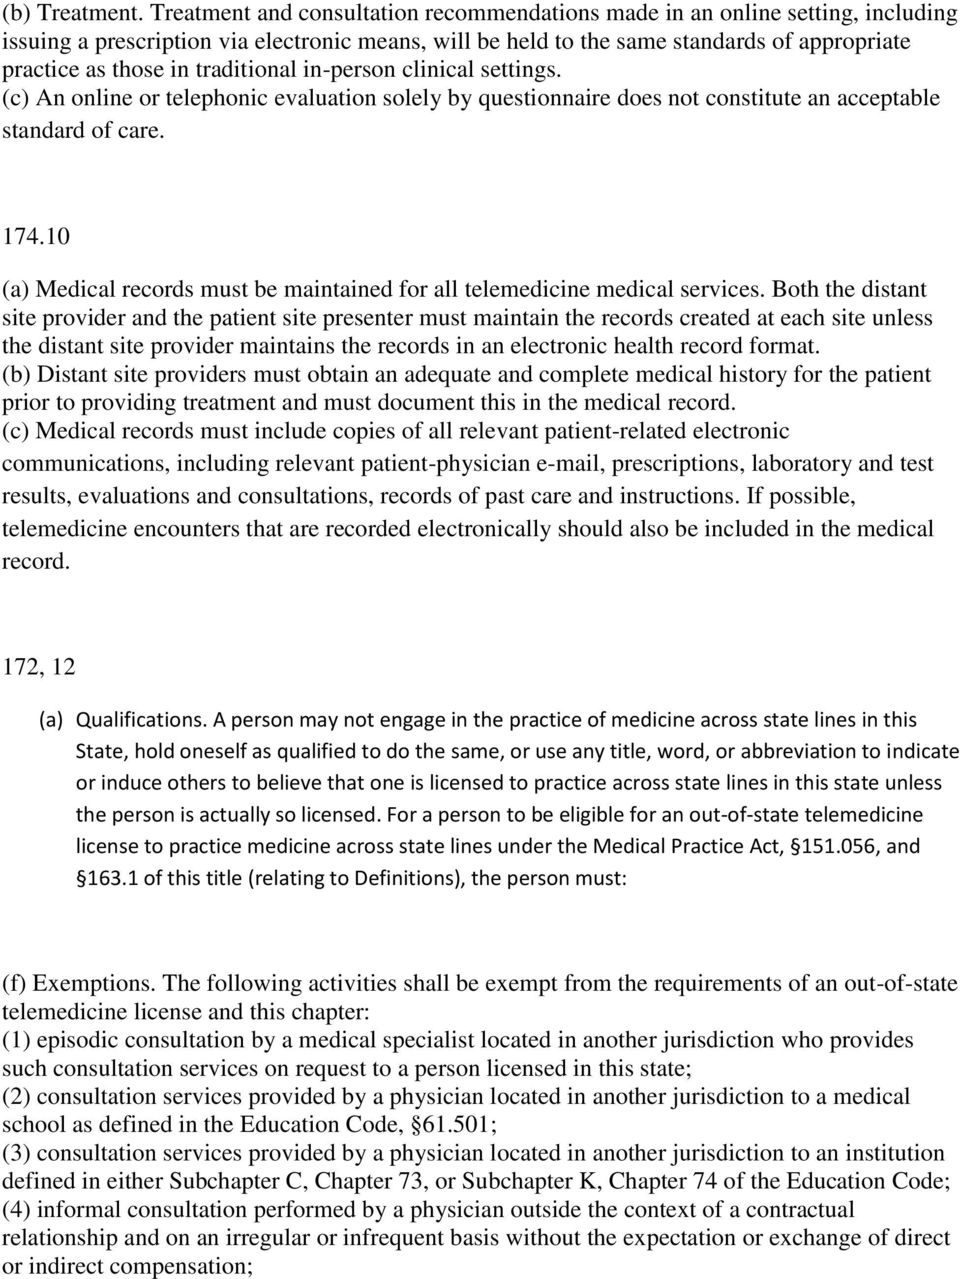 traditional in-person clinical settings. (c) An online or telephonic evaluation solely by questionnaire does not constitute an acceptable standard of care. 174.